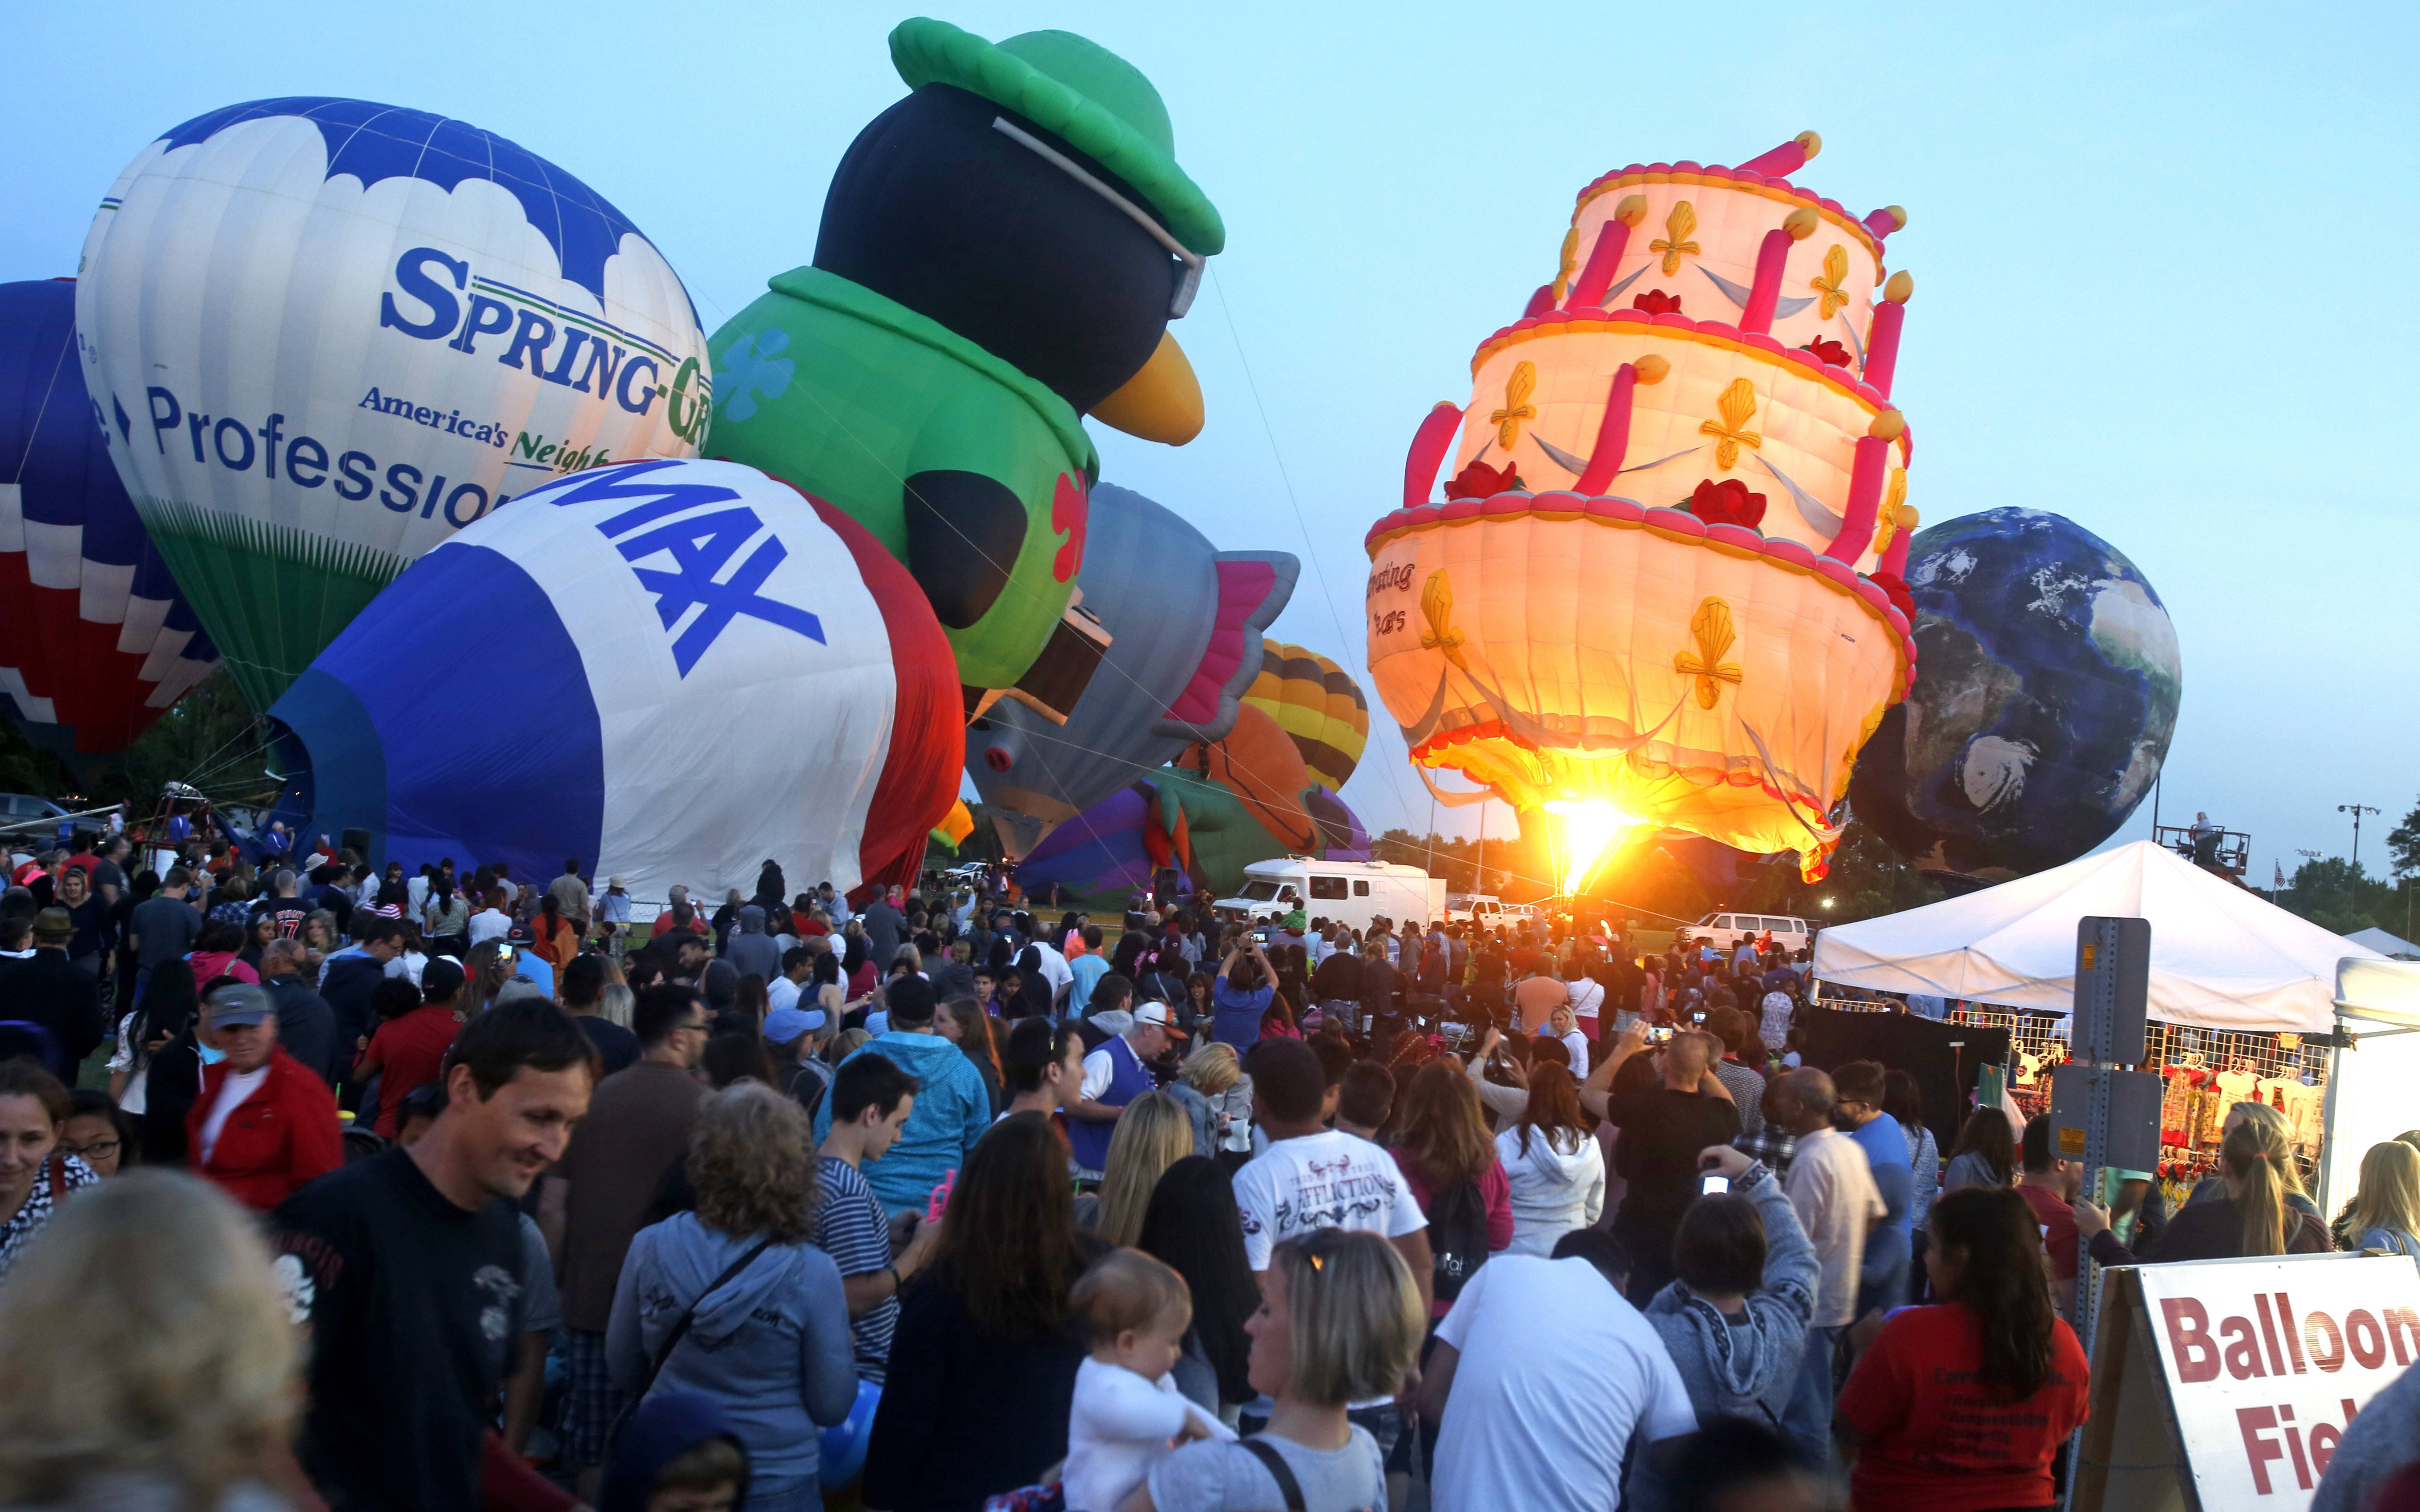 The birthday hot air balloon shows its glow during last year's Eyes to the Skies fest in Lisle.